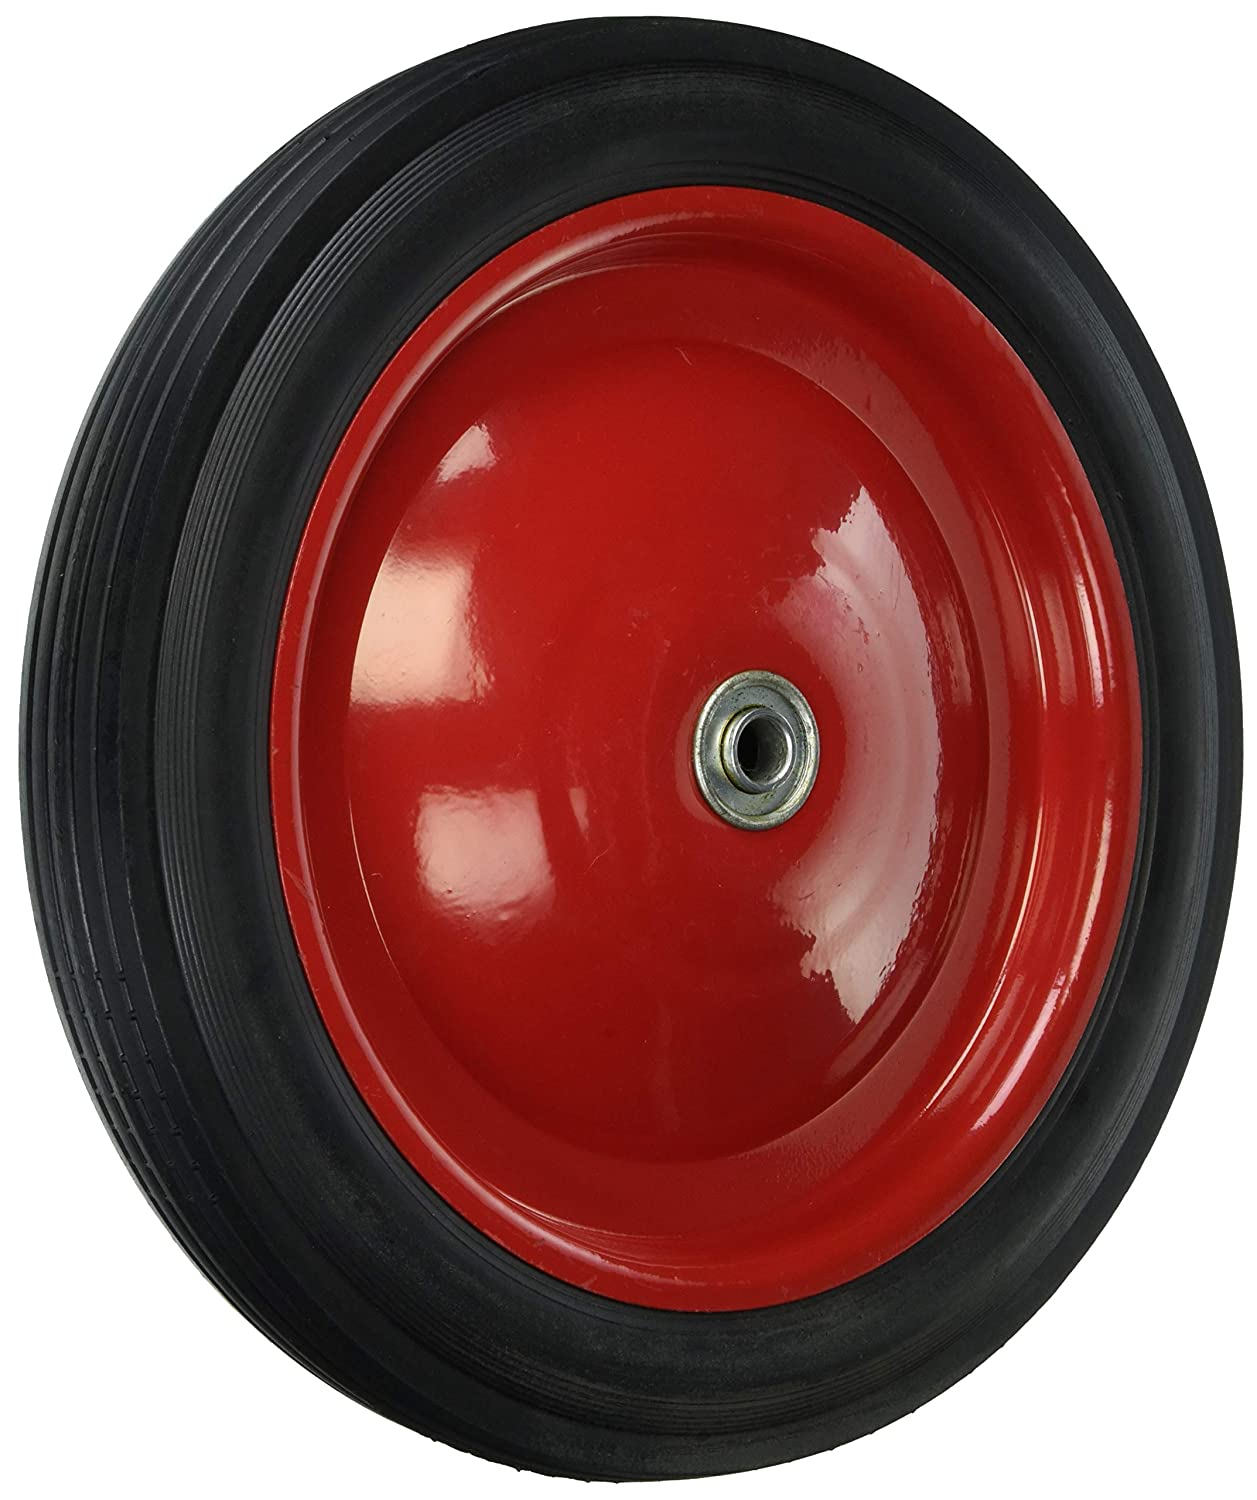 Shepherd Hardware 9584 12-Inch Semi-Pneumatic Rubber Tire, Steel Hub with Ball Bearings, Ribbed Tread, 1/2-Inch Bore Centered Axle